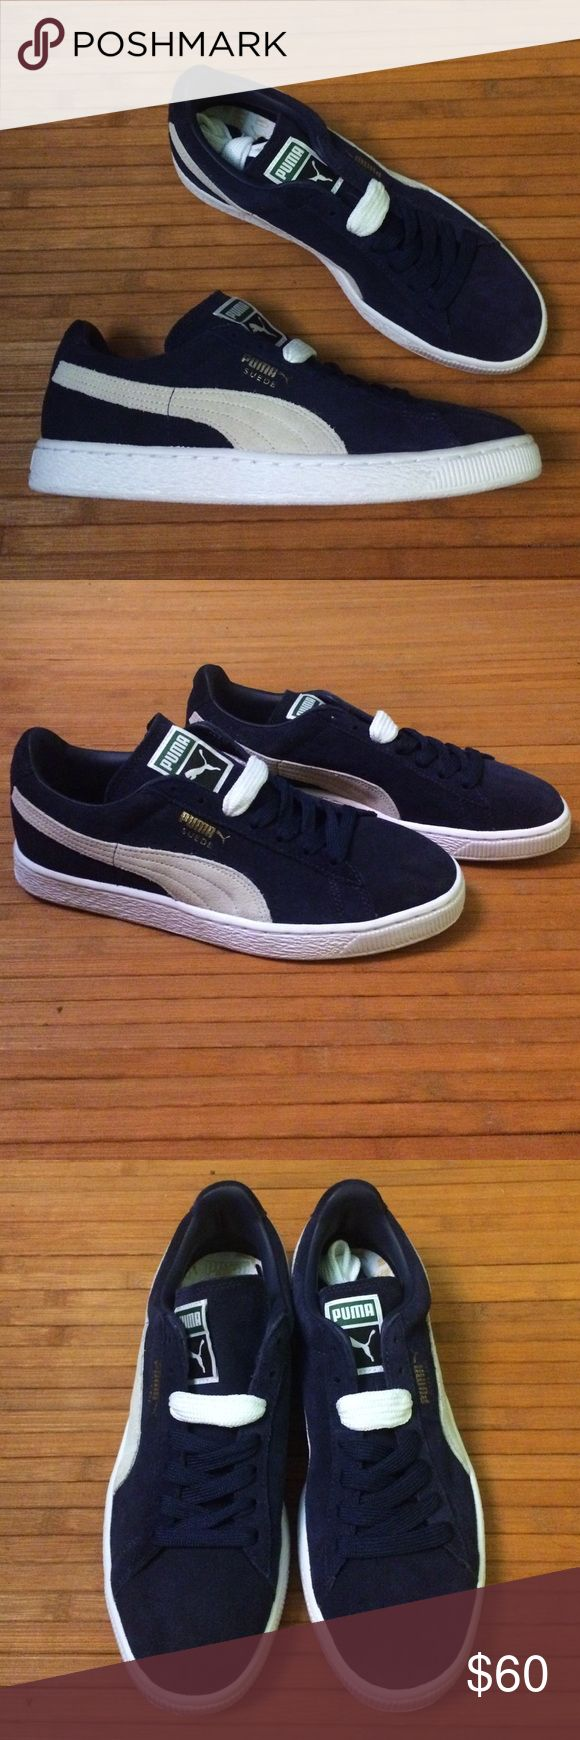 Details about puma womens suede classic rg black running shoes - Nwob Navy Puma Suedes Pumas Shoesshoes Sneakersblack